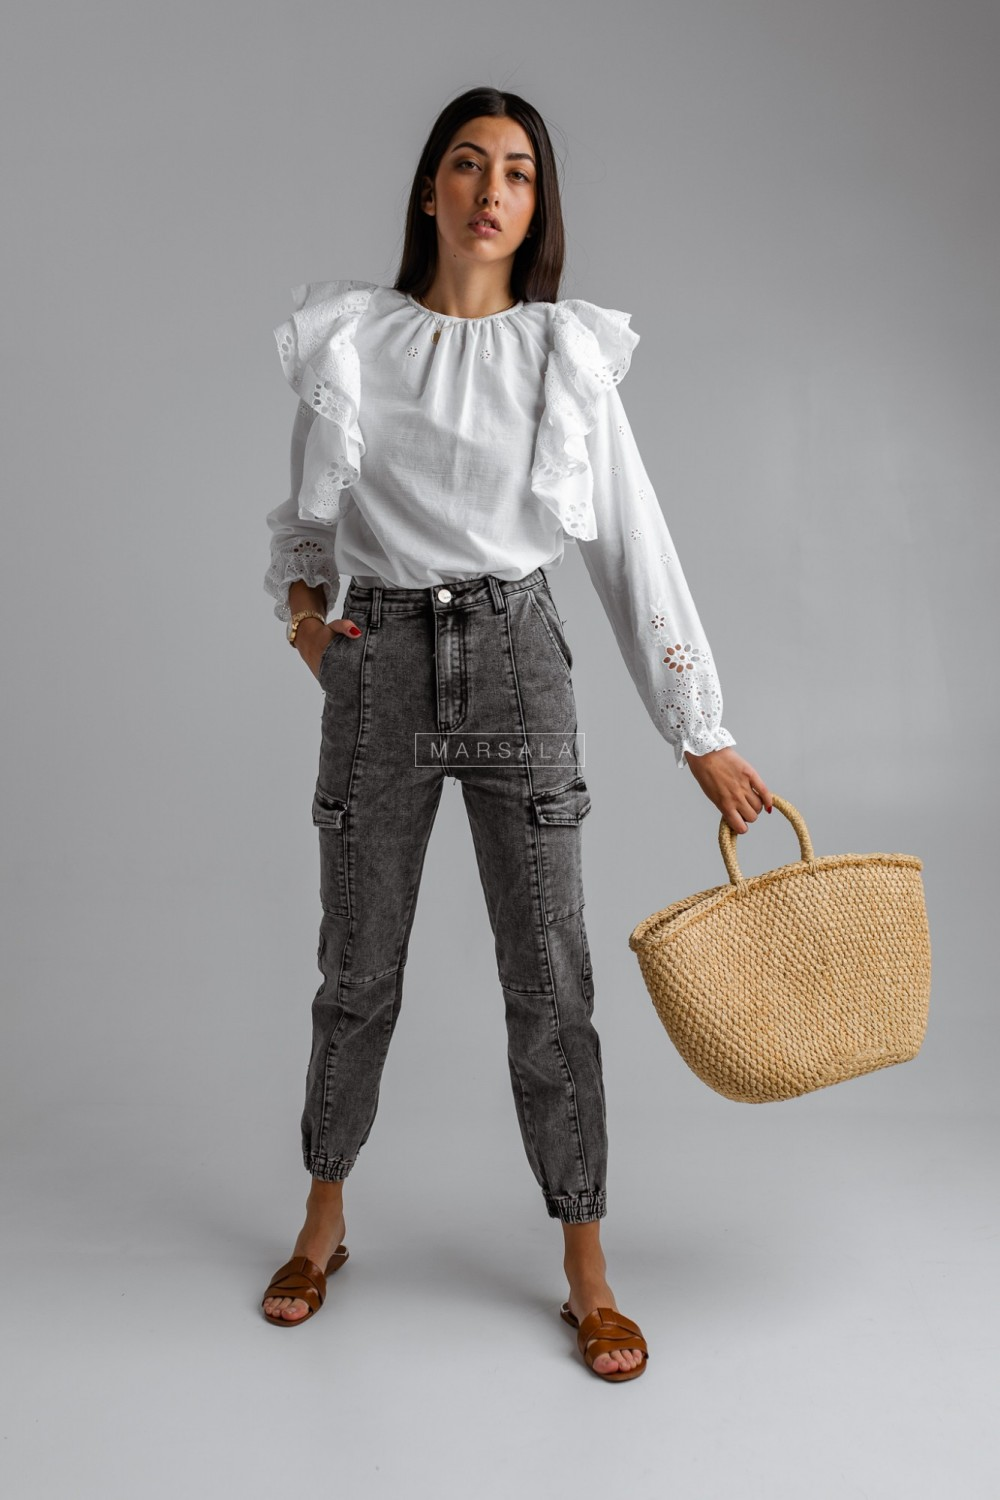 Jogger trousers with pockets, grey marbled jeans - MORRIS